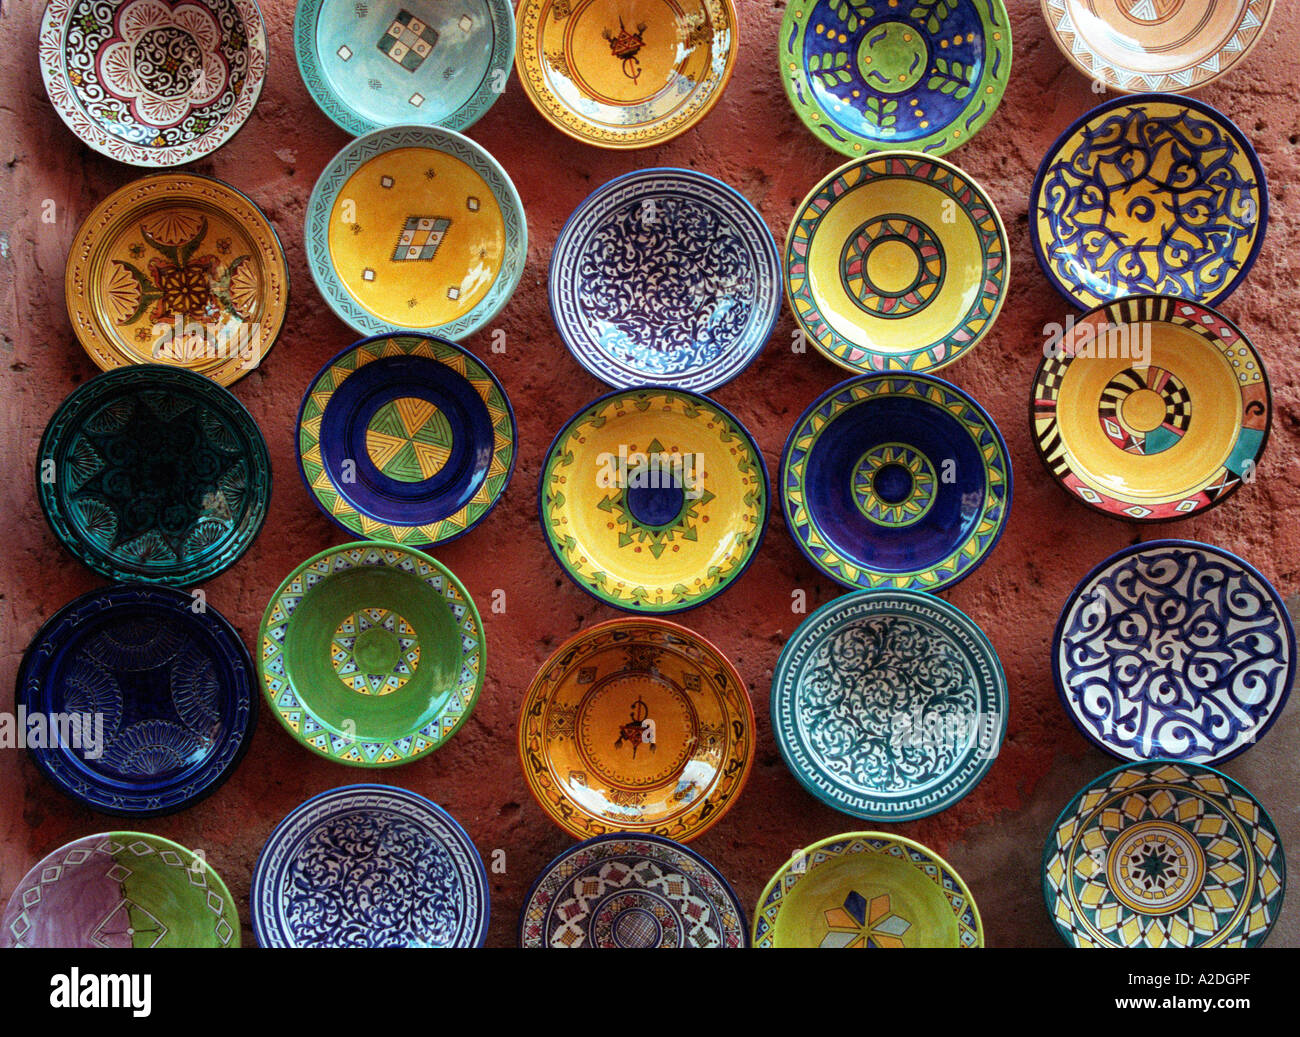 Selection Of 25 Decorated Moroccan Ceramic Plates On A Wall Morocco Stock Photo Alamy